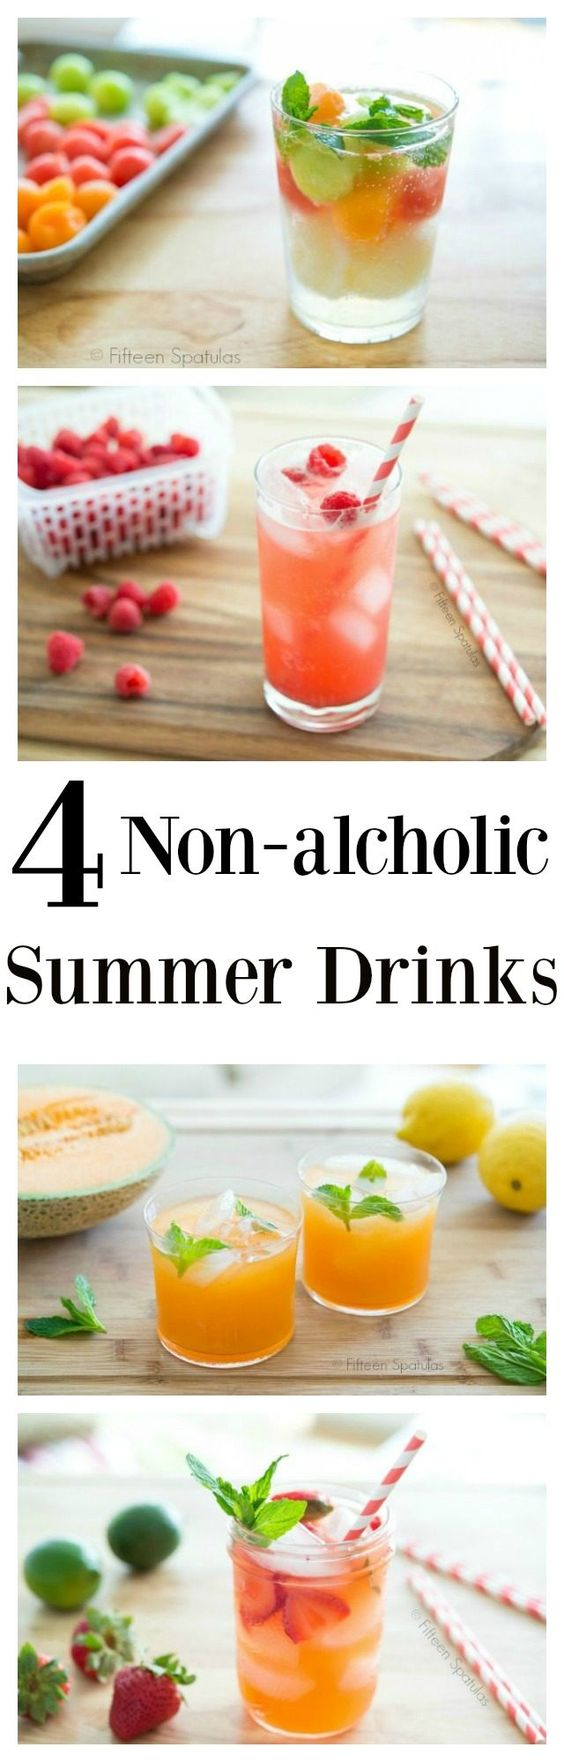 Refreshing summer drinks summer drinks and strawberry for Refreshing drink recipes non alcoholic